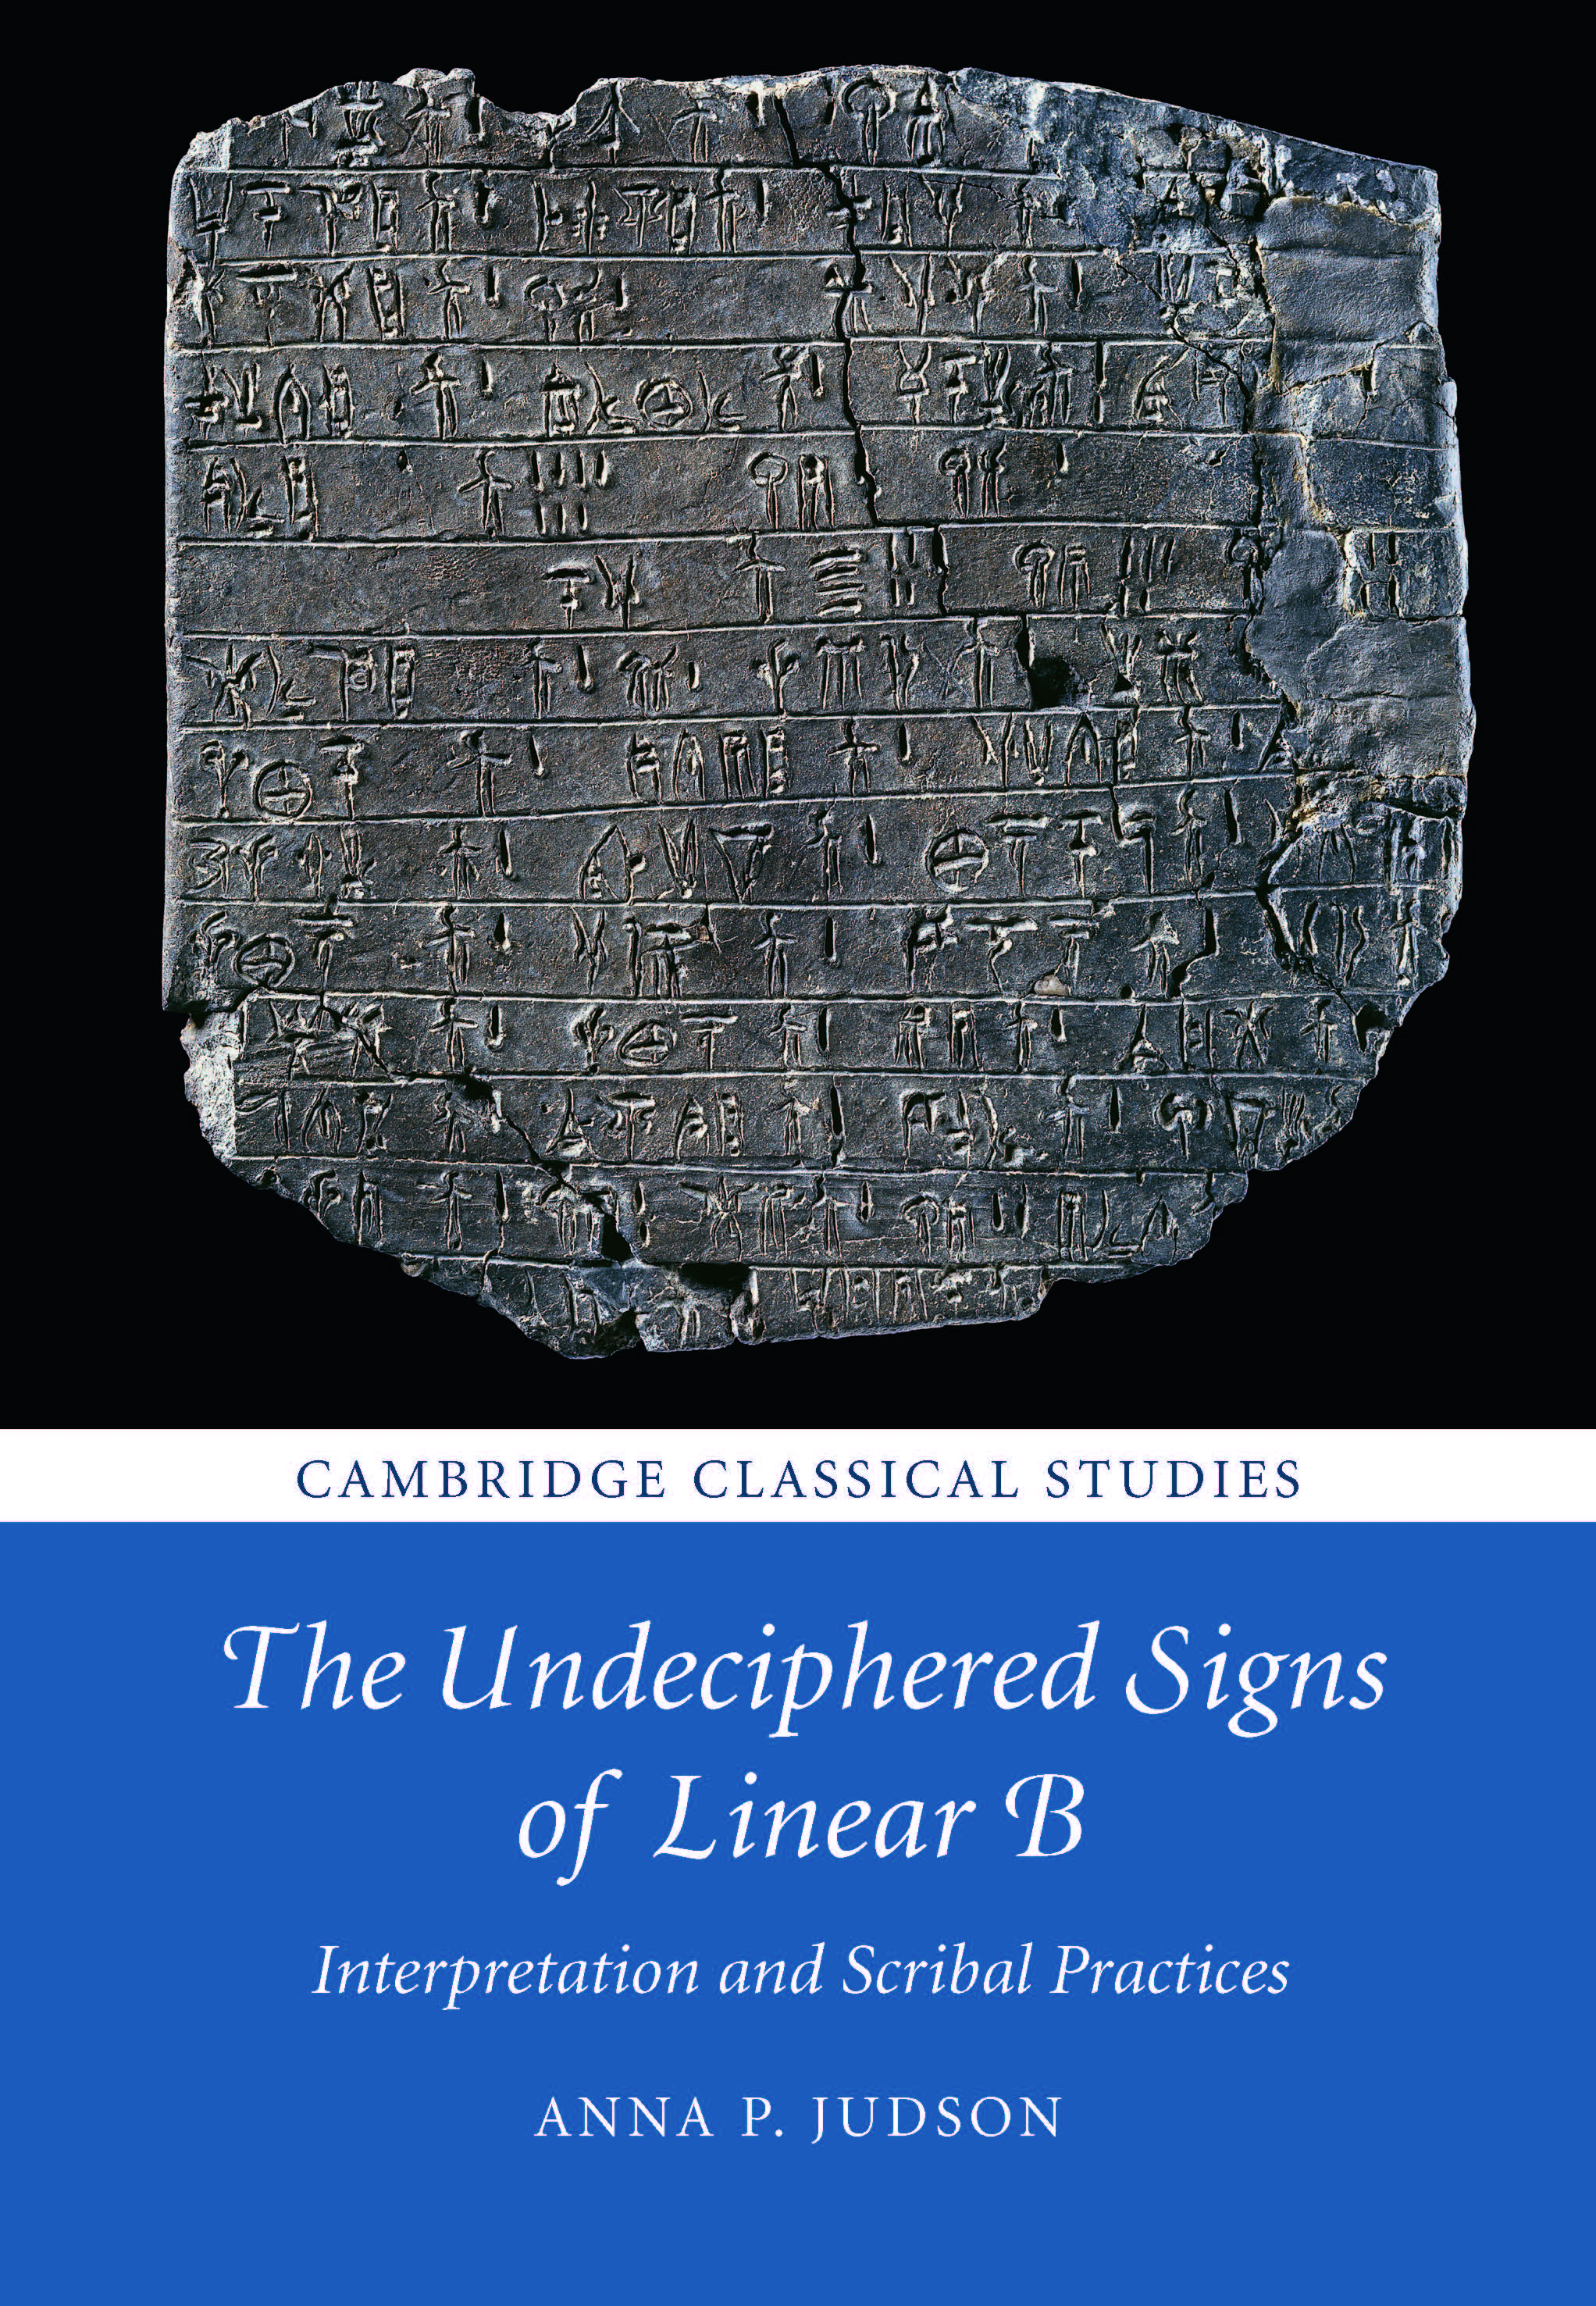 "Book cover with a large clay tablet, inscribed in Linear B, above text reading ""Cambridge Classical Studies - The Undeciphered Signs of Linear B: Interpretation and Scribal Practices - Anna P. Judson'"